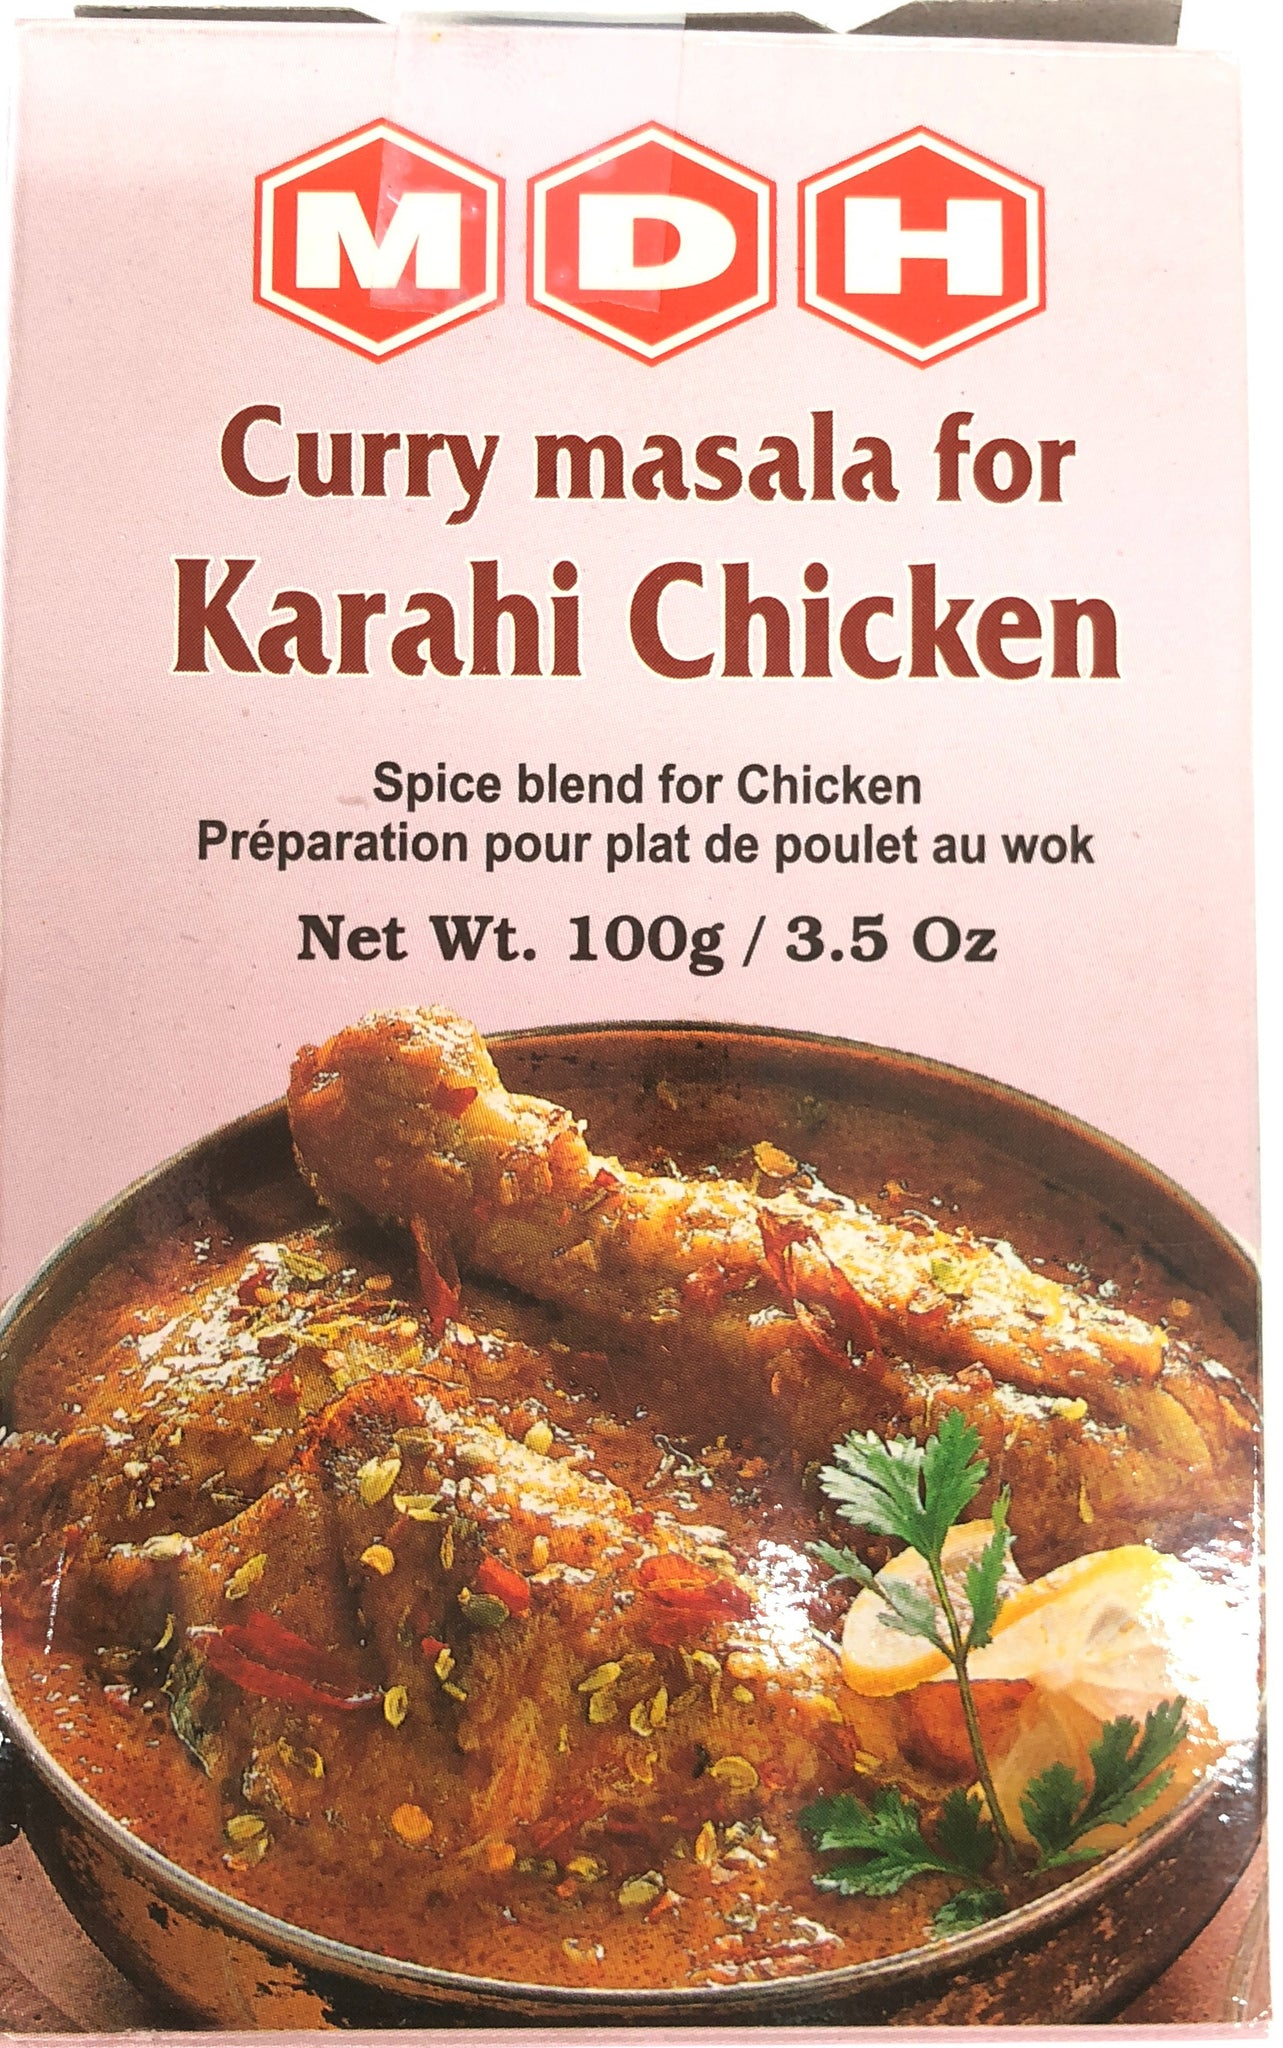 Curry masala for Karahi Chicken